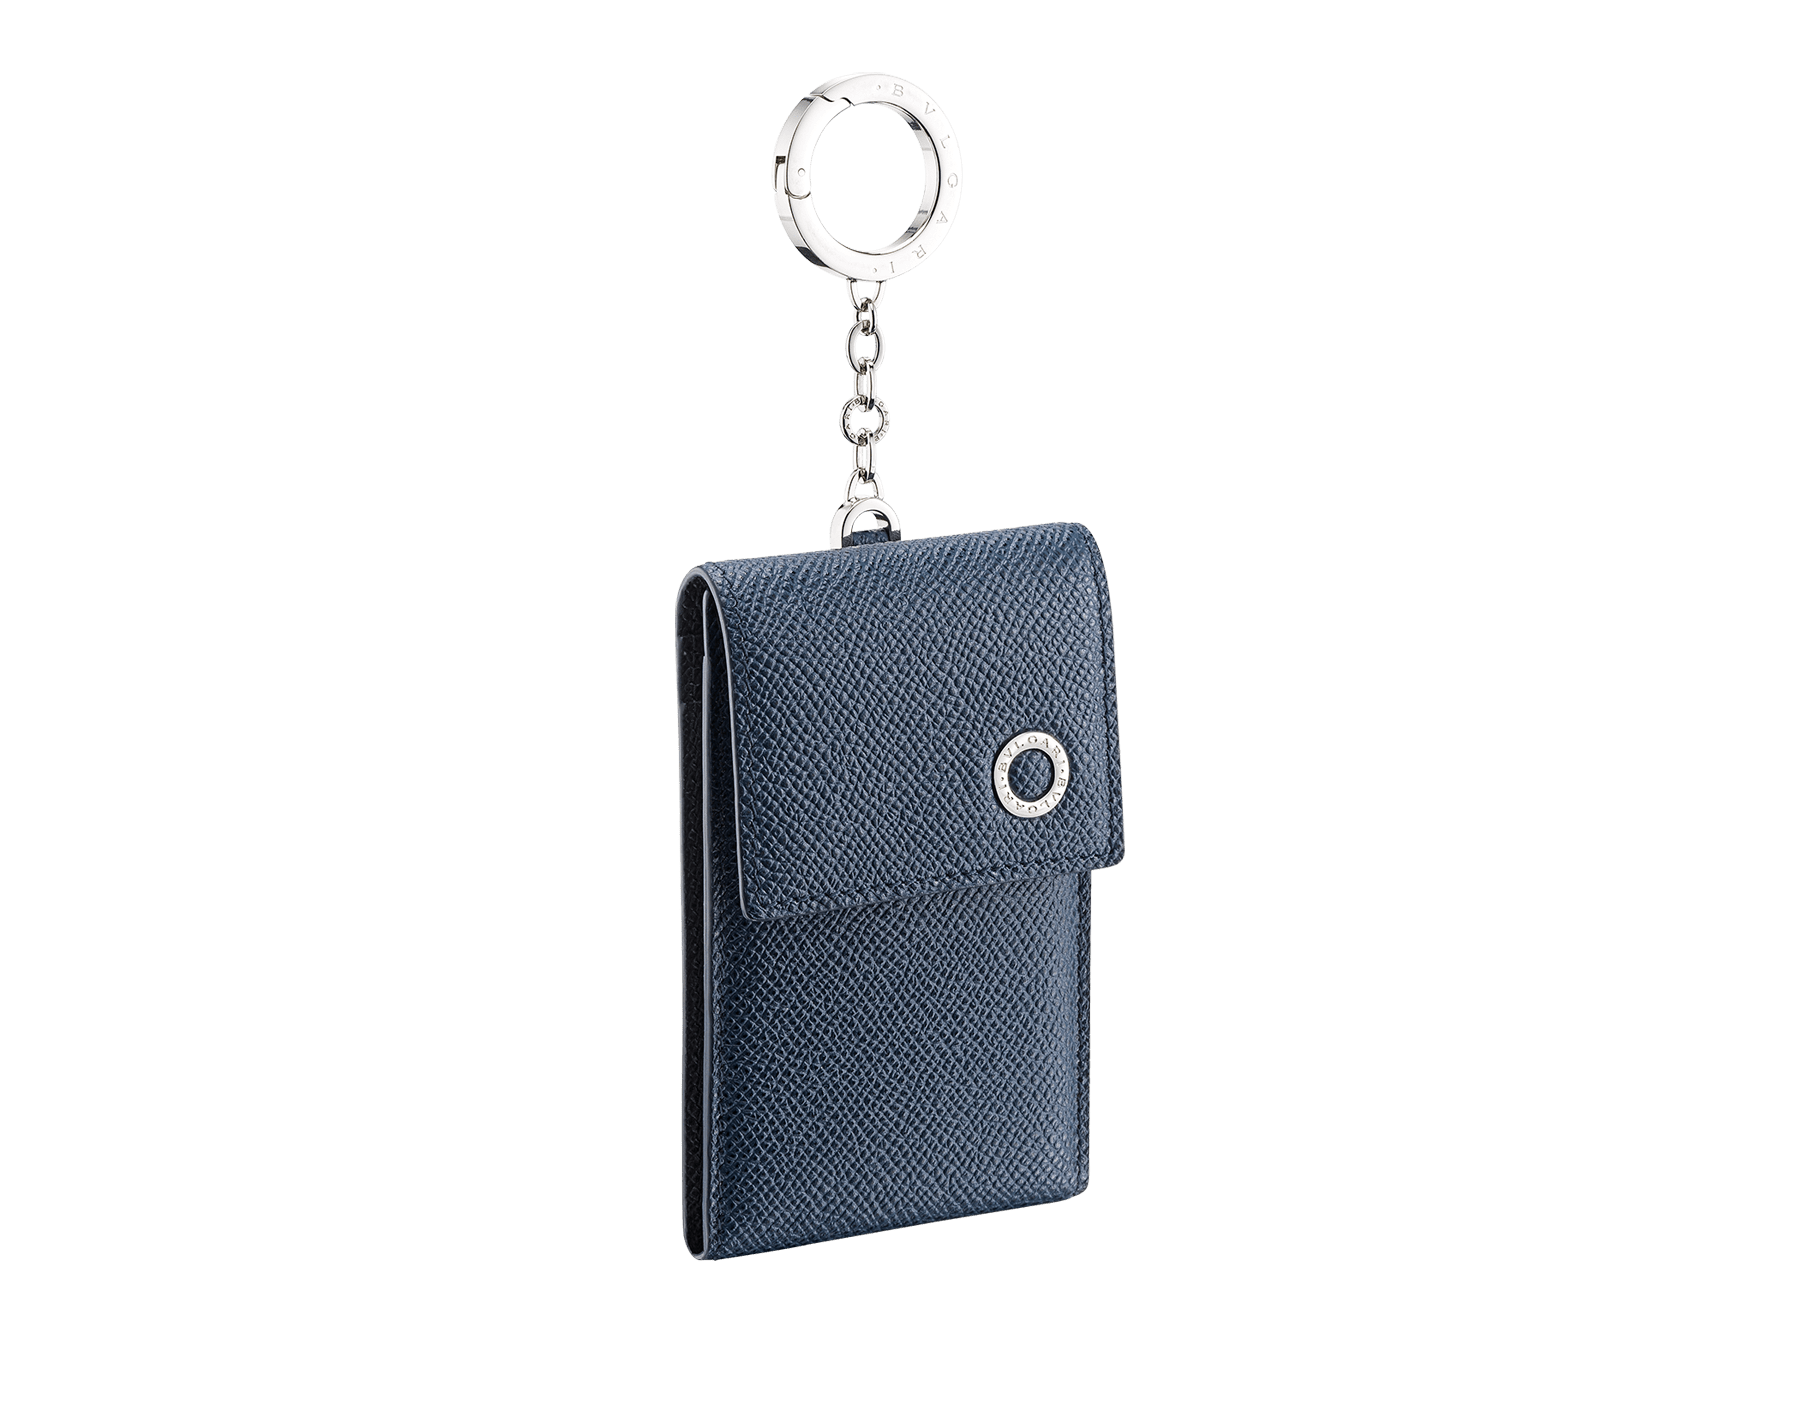 BVLGARI BVLGARI ID holder in denim sapphire and charcoal diamond grain calf leather. Iconic logo décor and snap hook in palladium plated brass. 289244 image 1